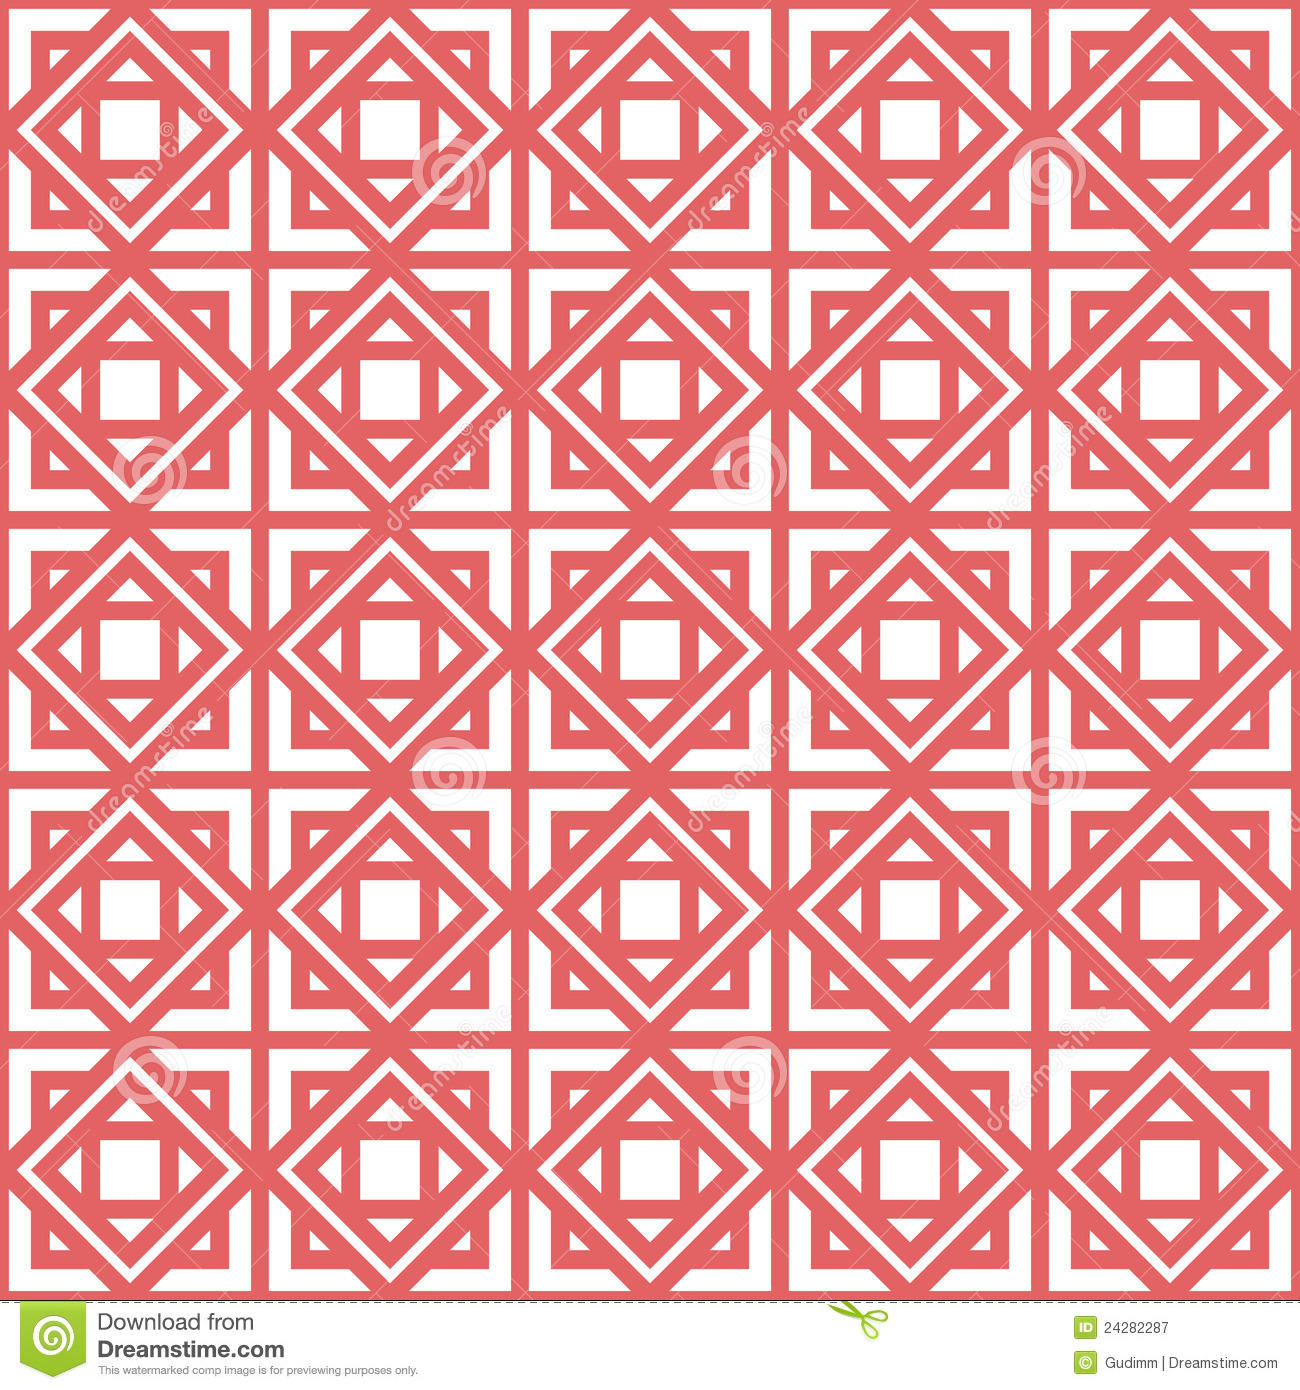 16 Geometric Seamless Pattern Vector Images